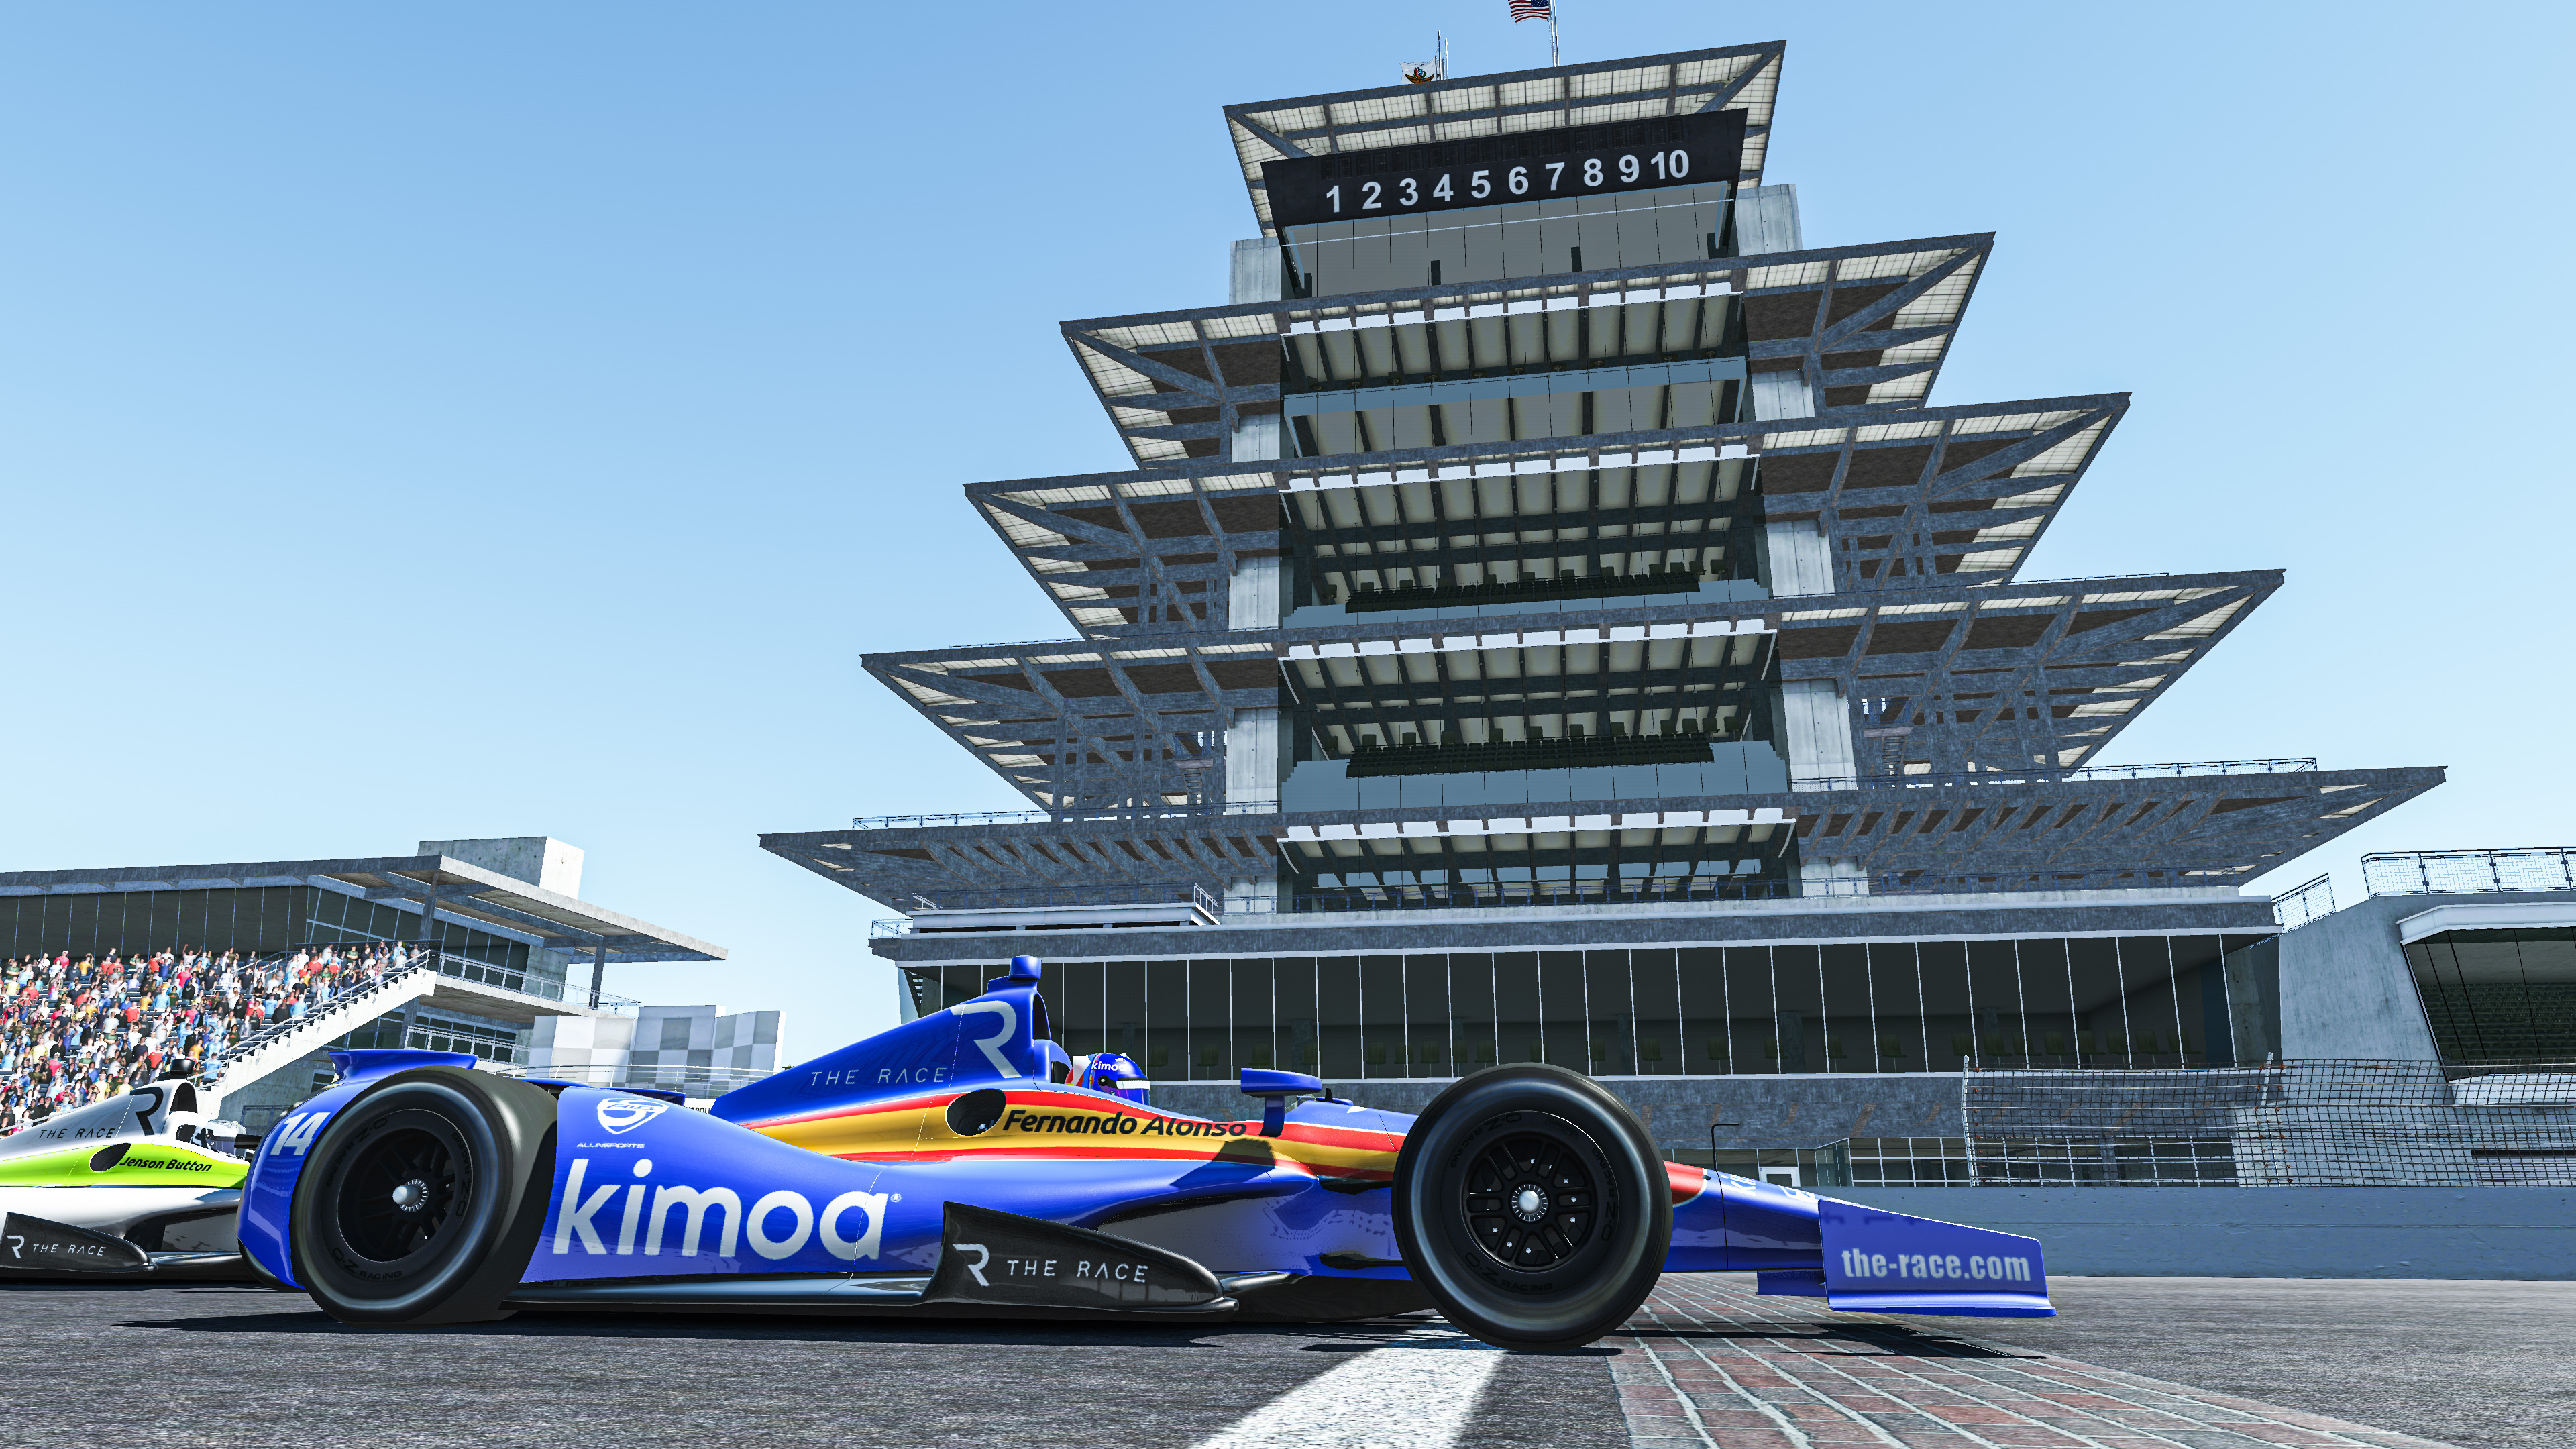 Fernando Alonso The Race Legends Trophy Indianapolis